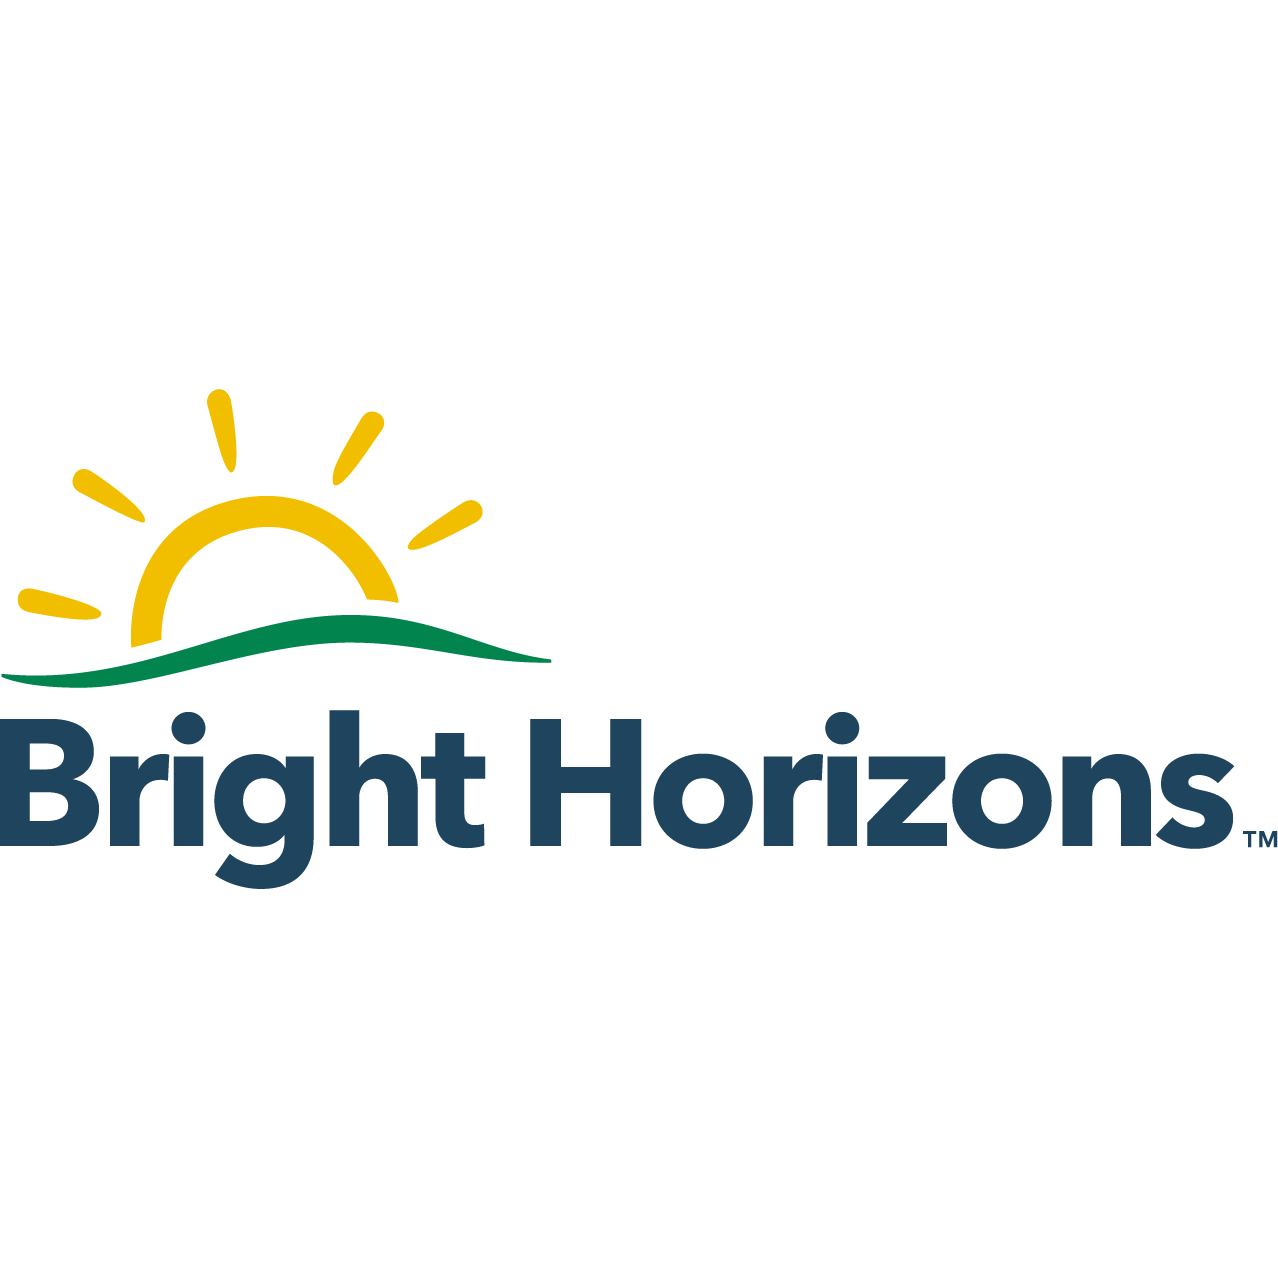 Bright Horizons Kenilworth Day Nursery and Preschool - Kenilworth, Warwickshire CV8 1BW - 03300 574203 | ShowMeLocal.com